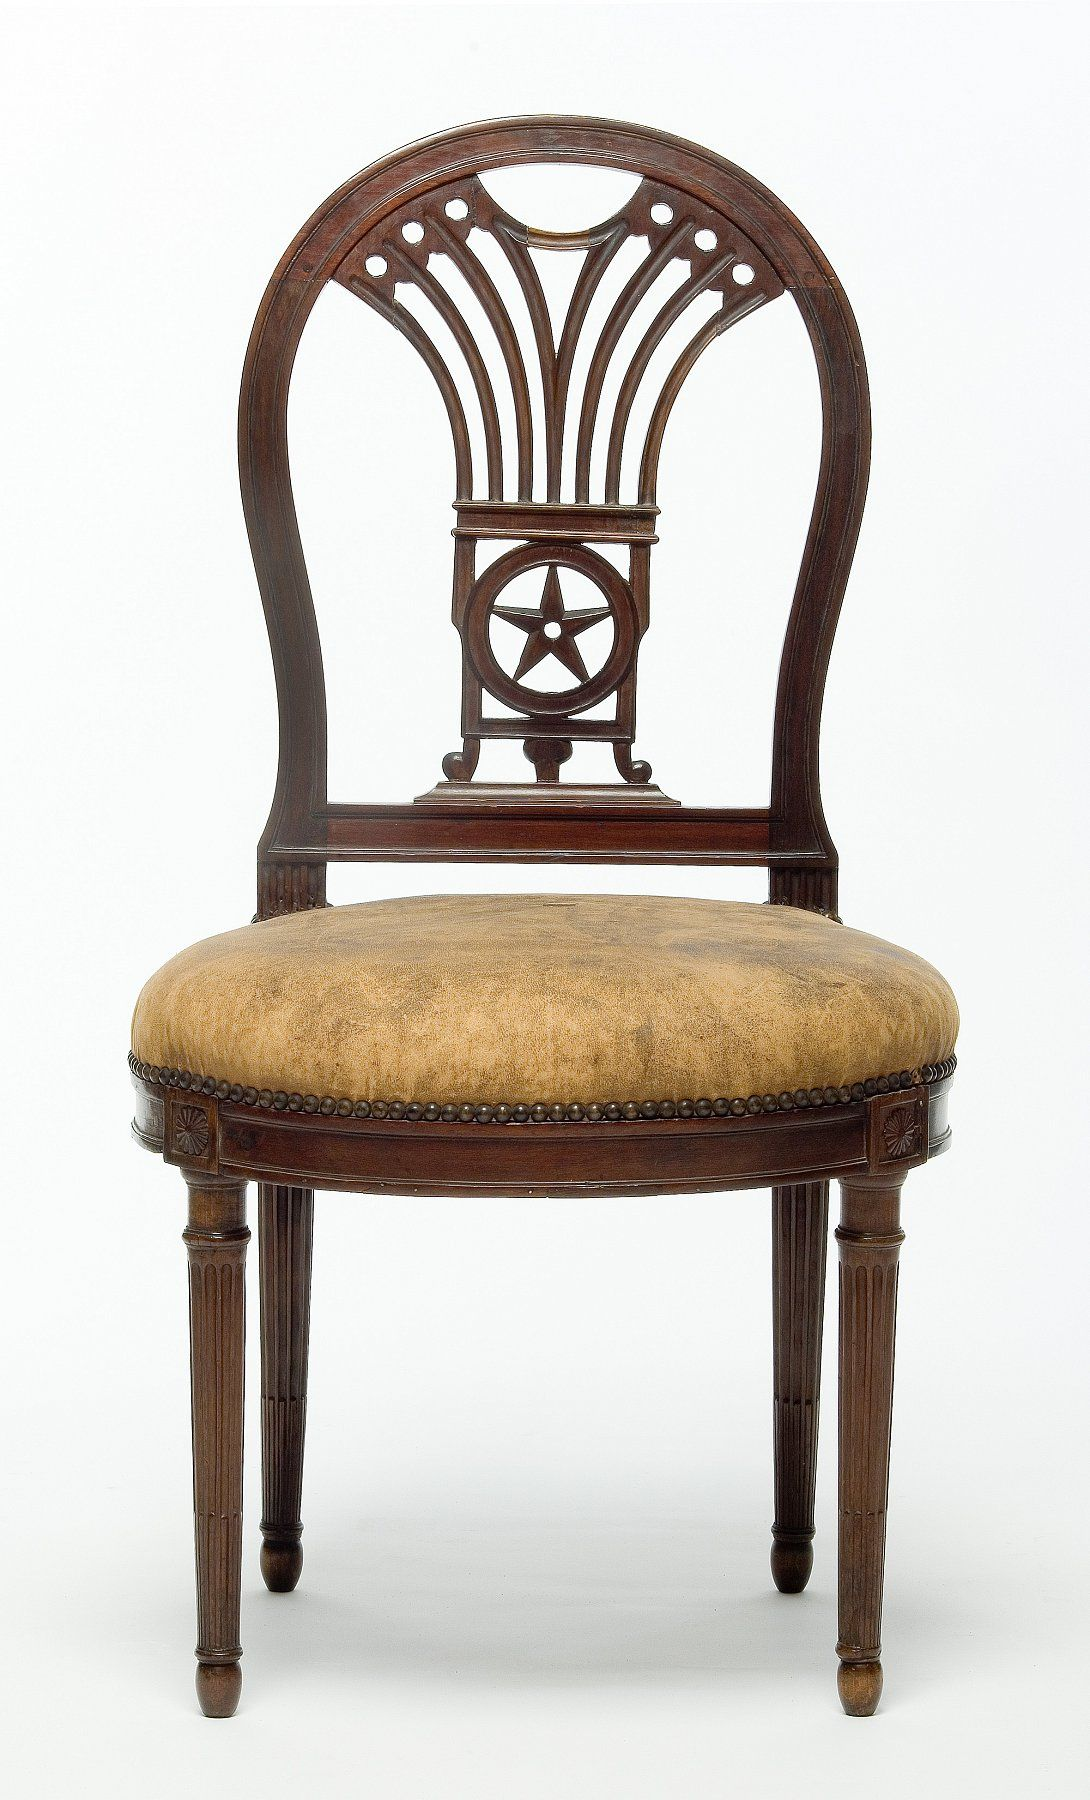 This israel sack american federal mahogany antique lolling arm chair - Chair Georges Jacob Master In 1765 Paris Circa Beech And Mahogany Carved Leather Trim